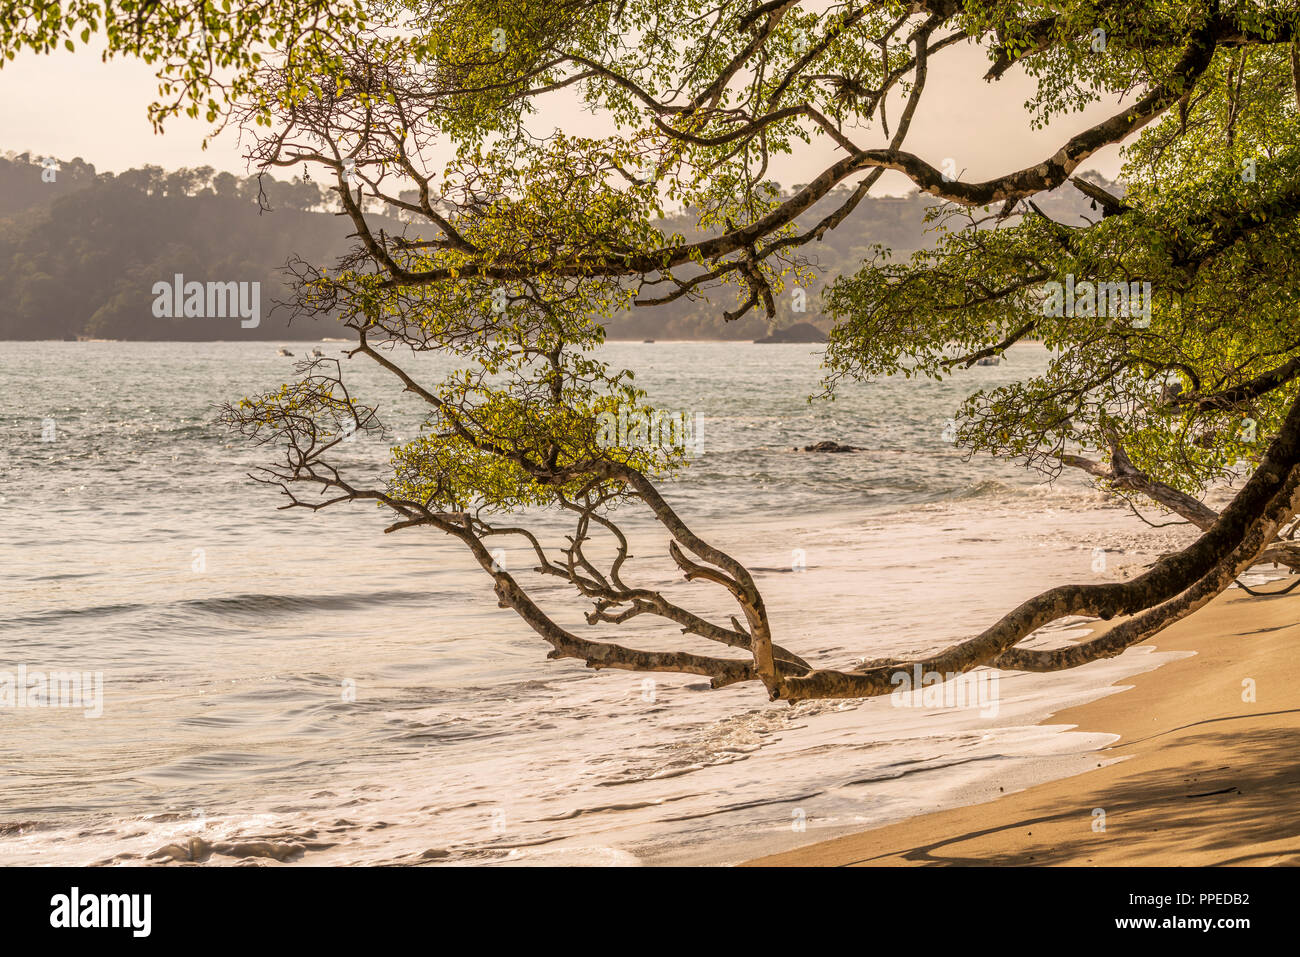 Beach scenes, Corcovado National Park, Osa Peninsula, Costa Rica - Stock Image